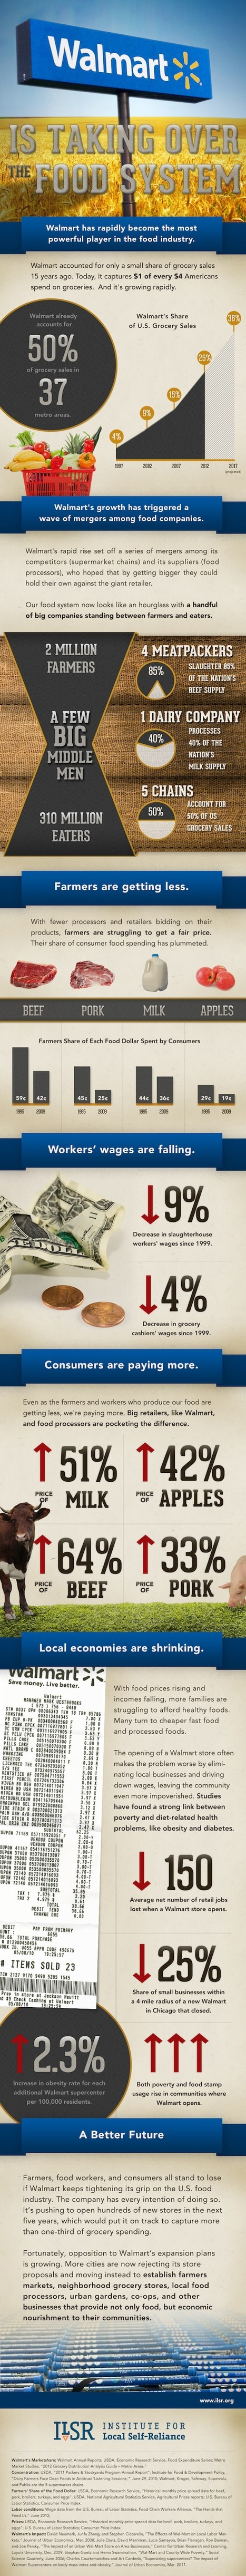 How Walmart Is Devouring Our Food System (Infographic) | The Barley Mow | Scoop.it